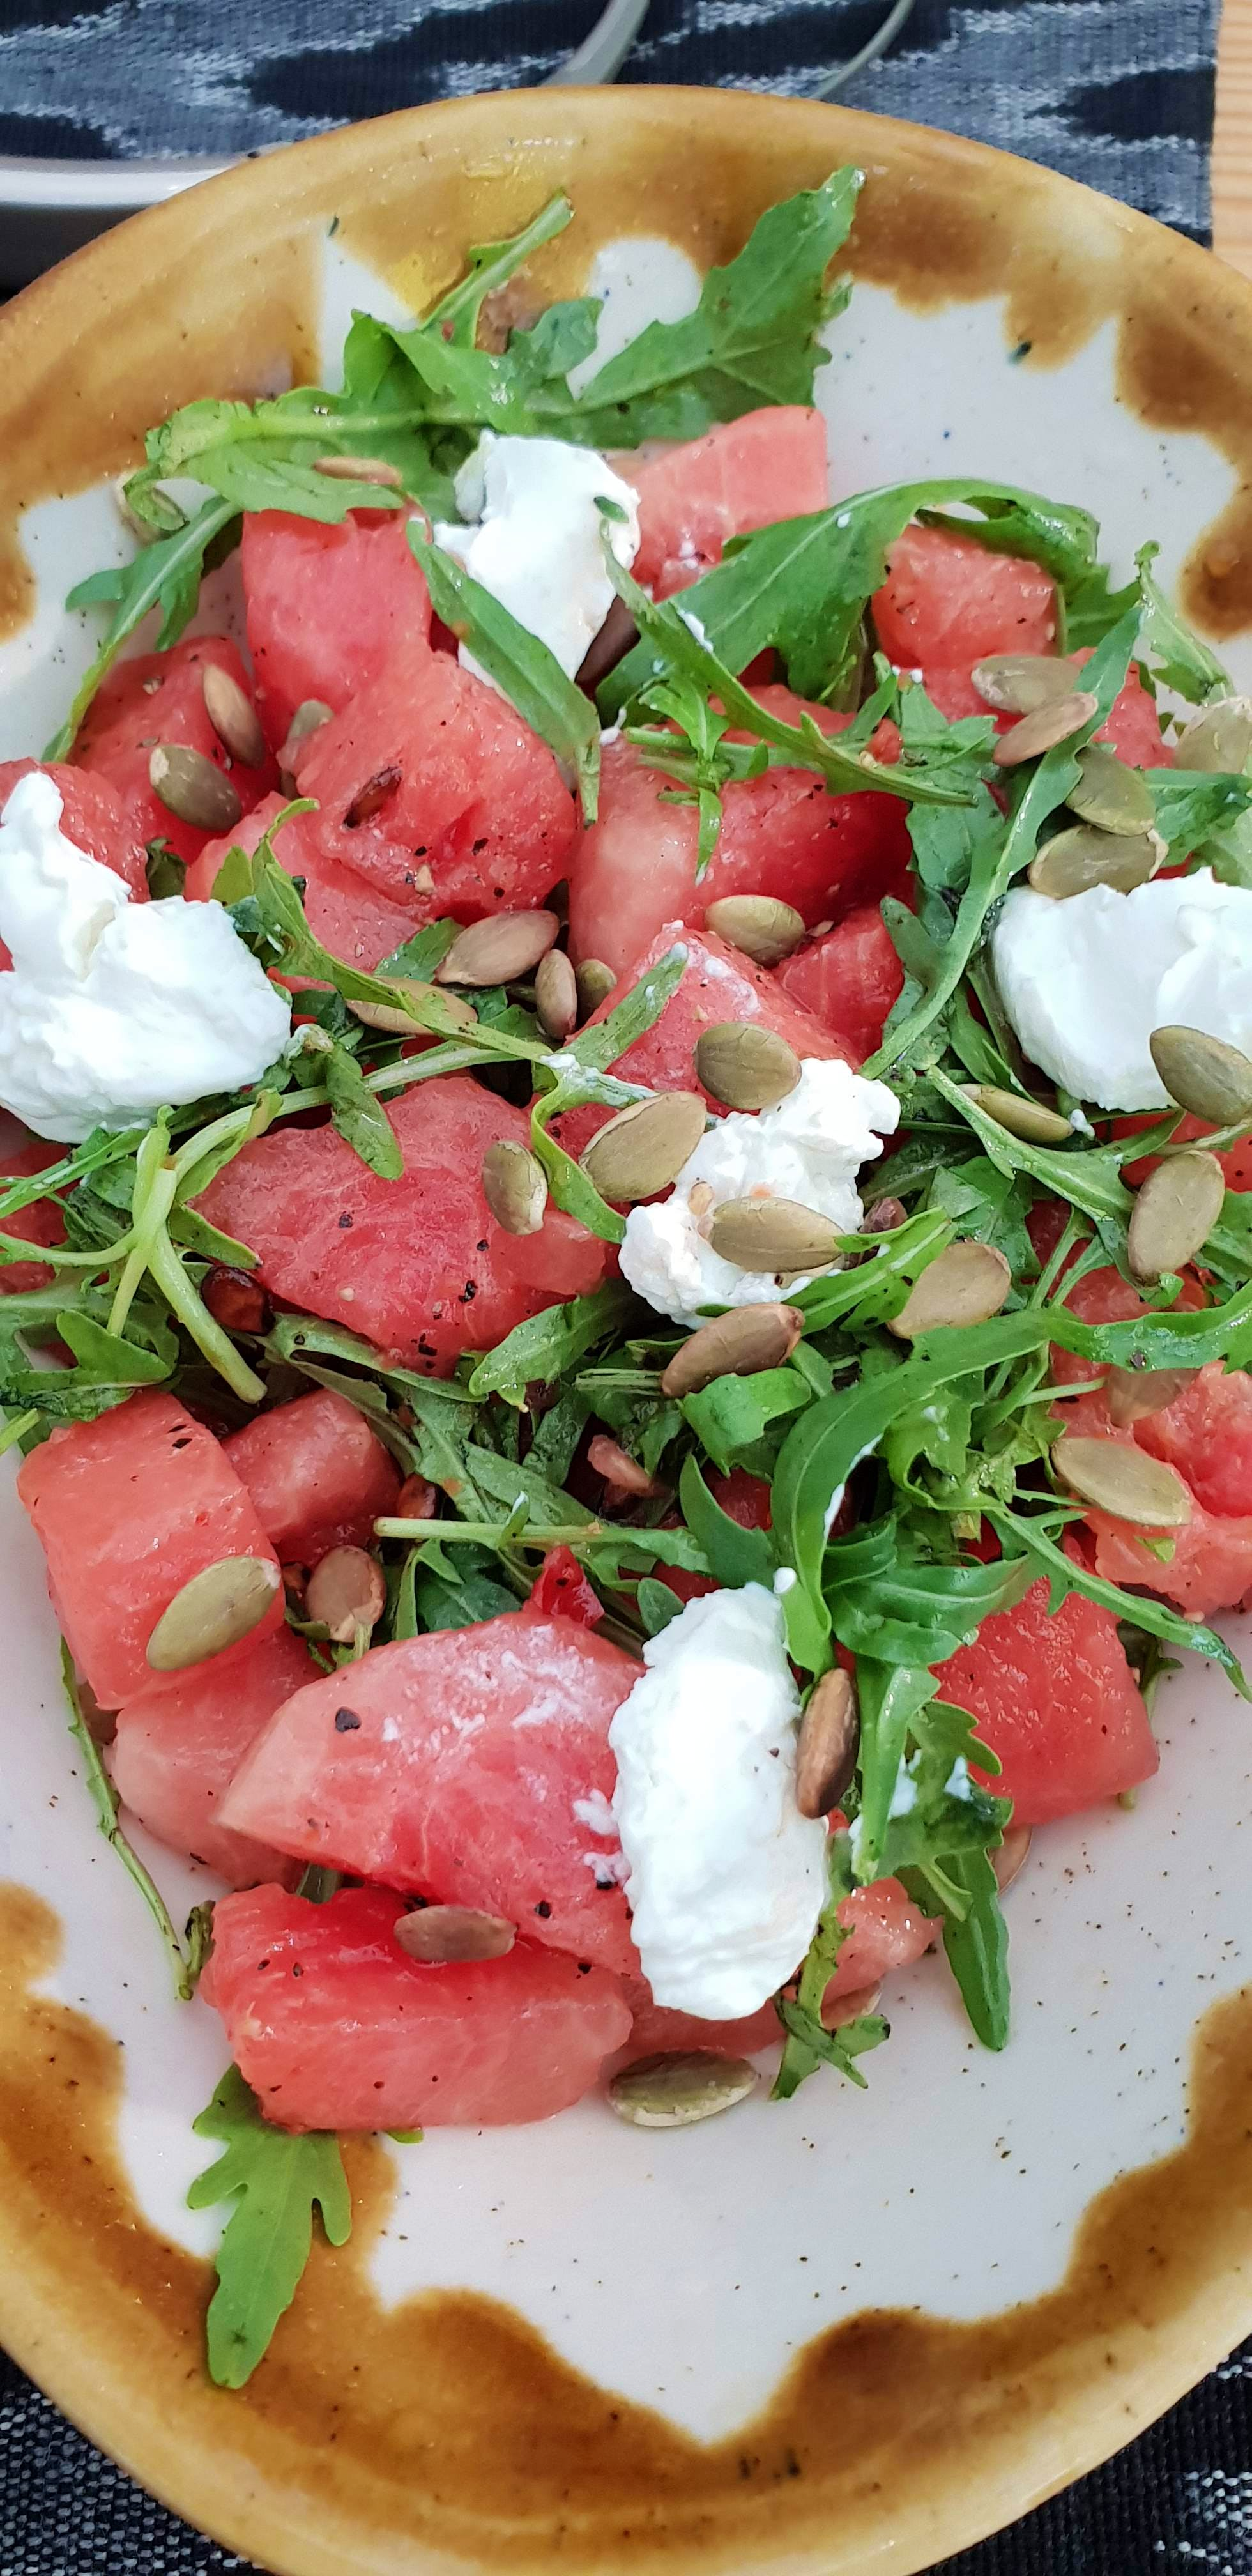 Dish,Food,Cuisine,Ingredient,Mozzarella,Goat cheese,Prosciutto,Produce,Watermelon,Feta